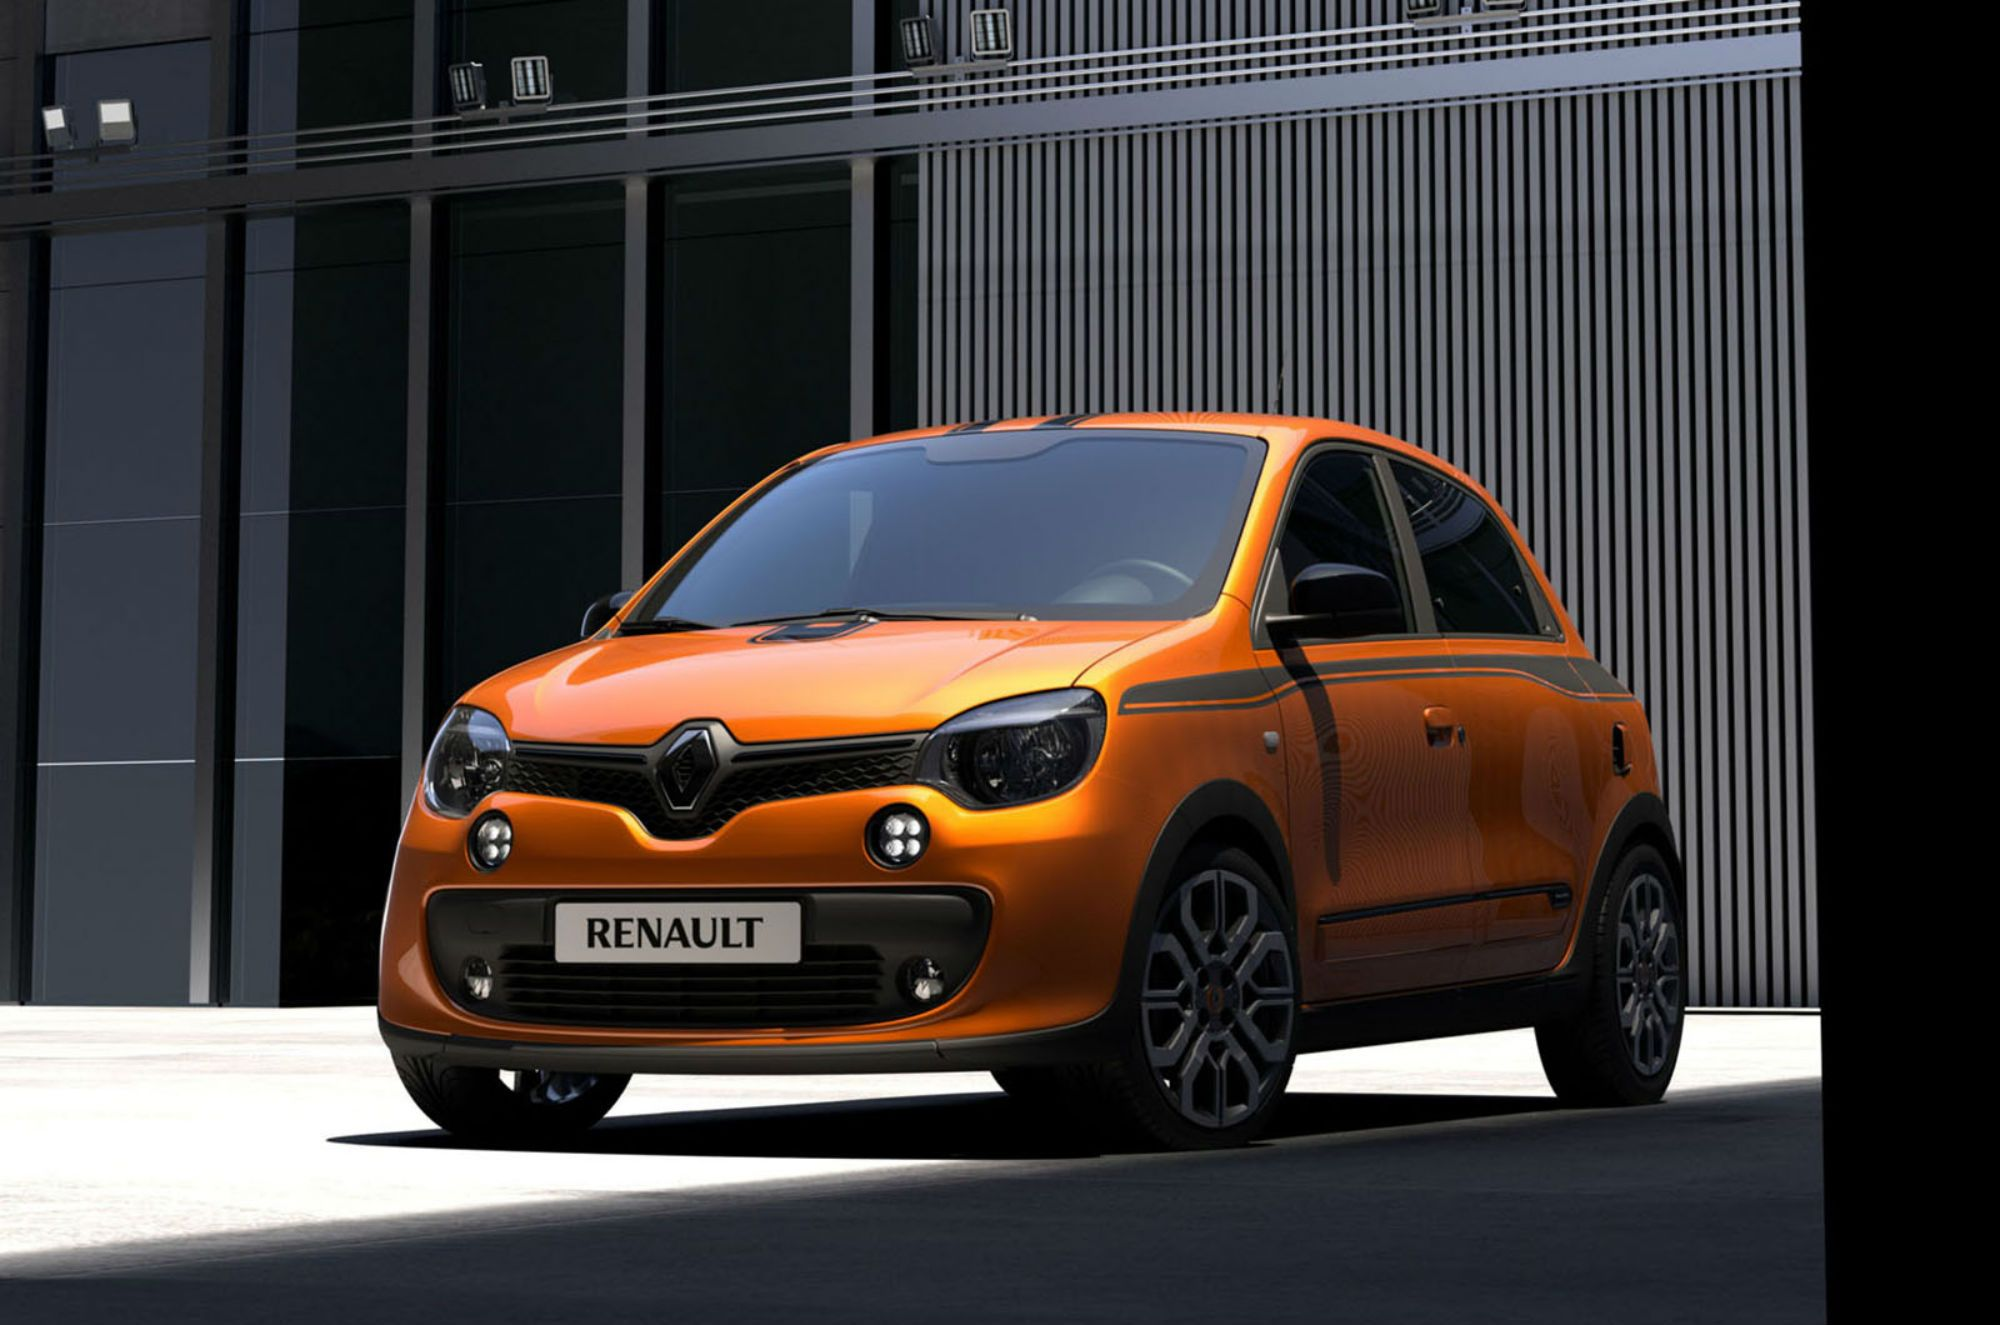 The Renault Twingo City Car Has Just Got A Little Hotter New